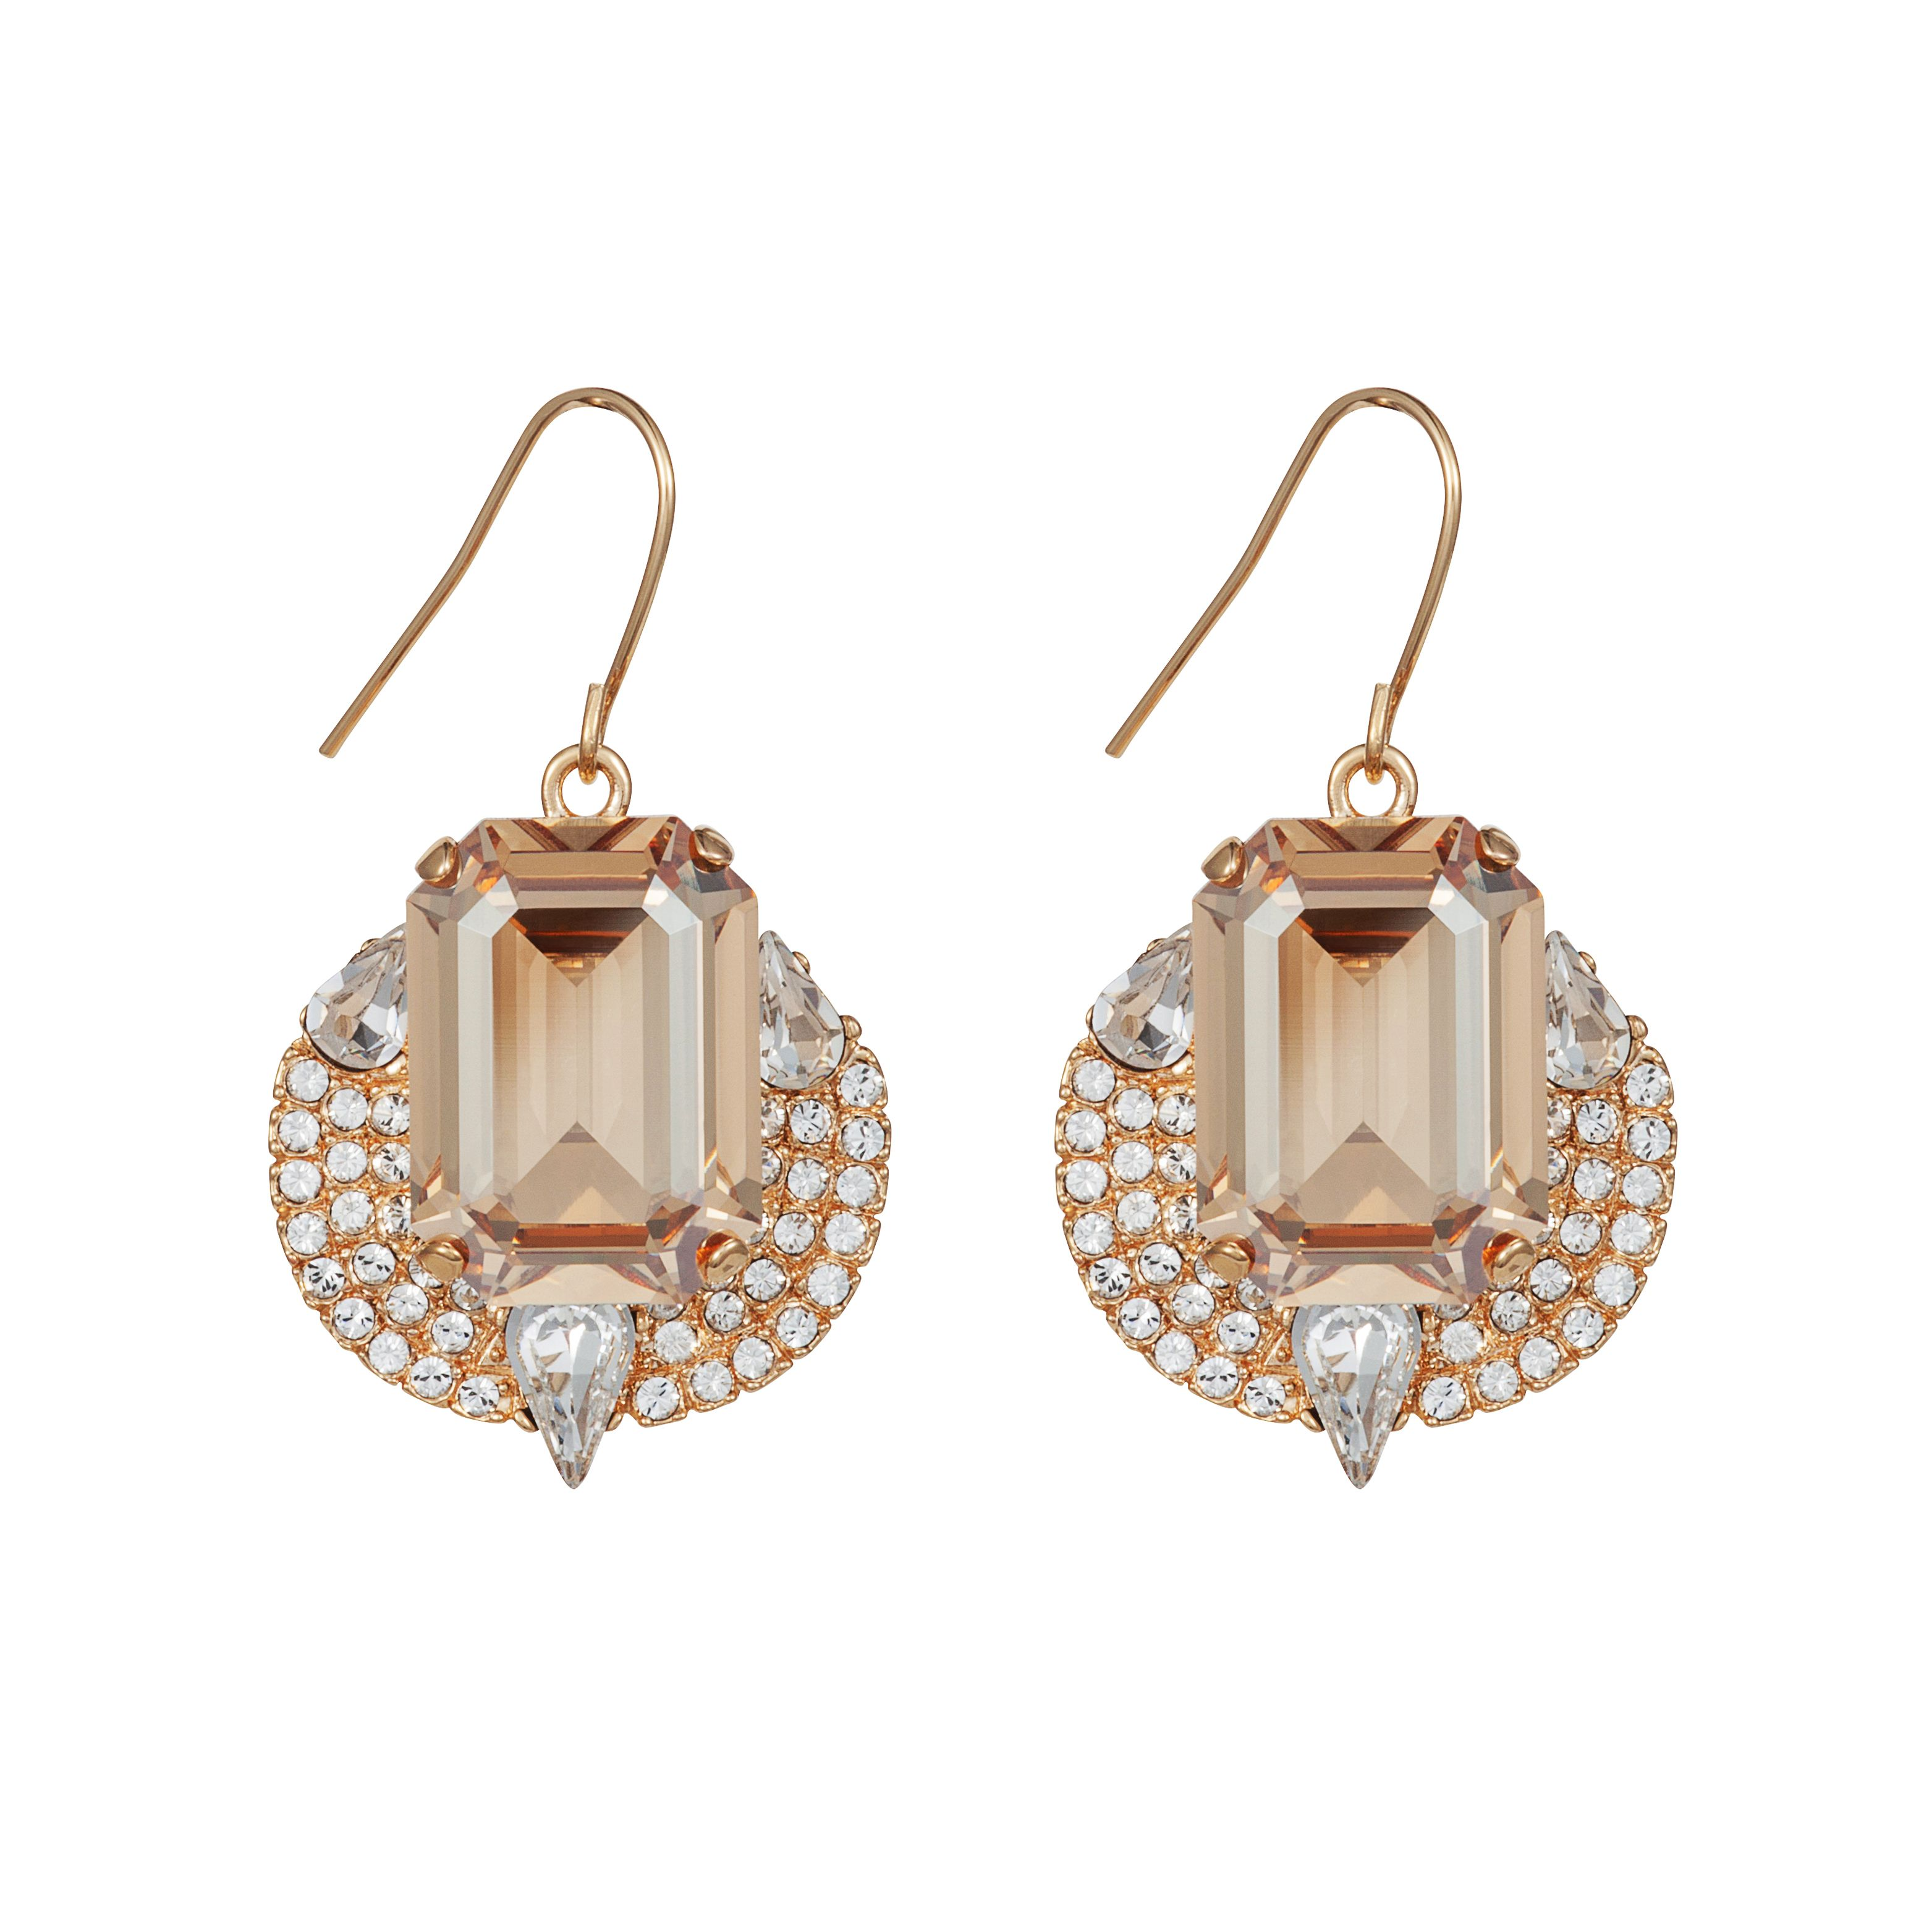 Handmade 18ct gold crystal mosaic earrings